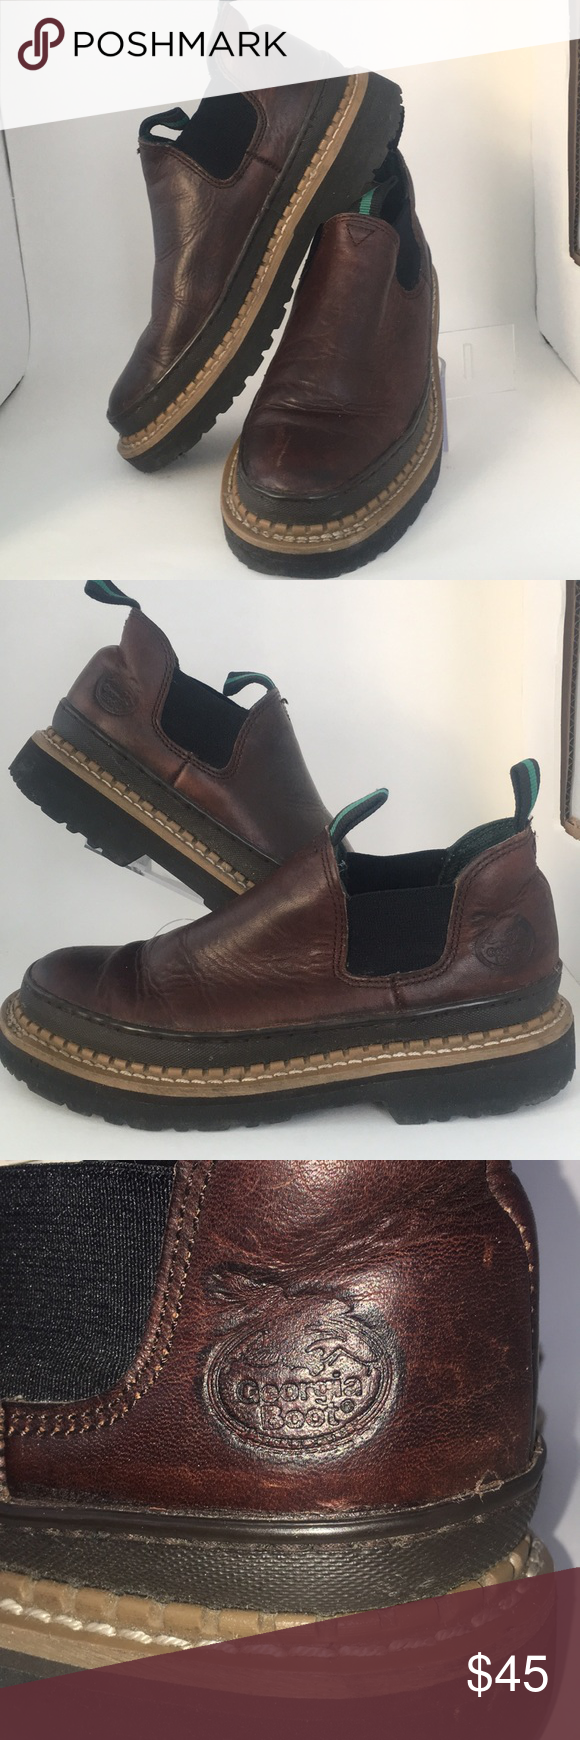 Boot co. USA leather work boot(M.a) in 2020